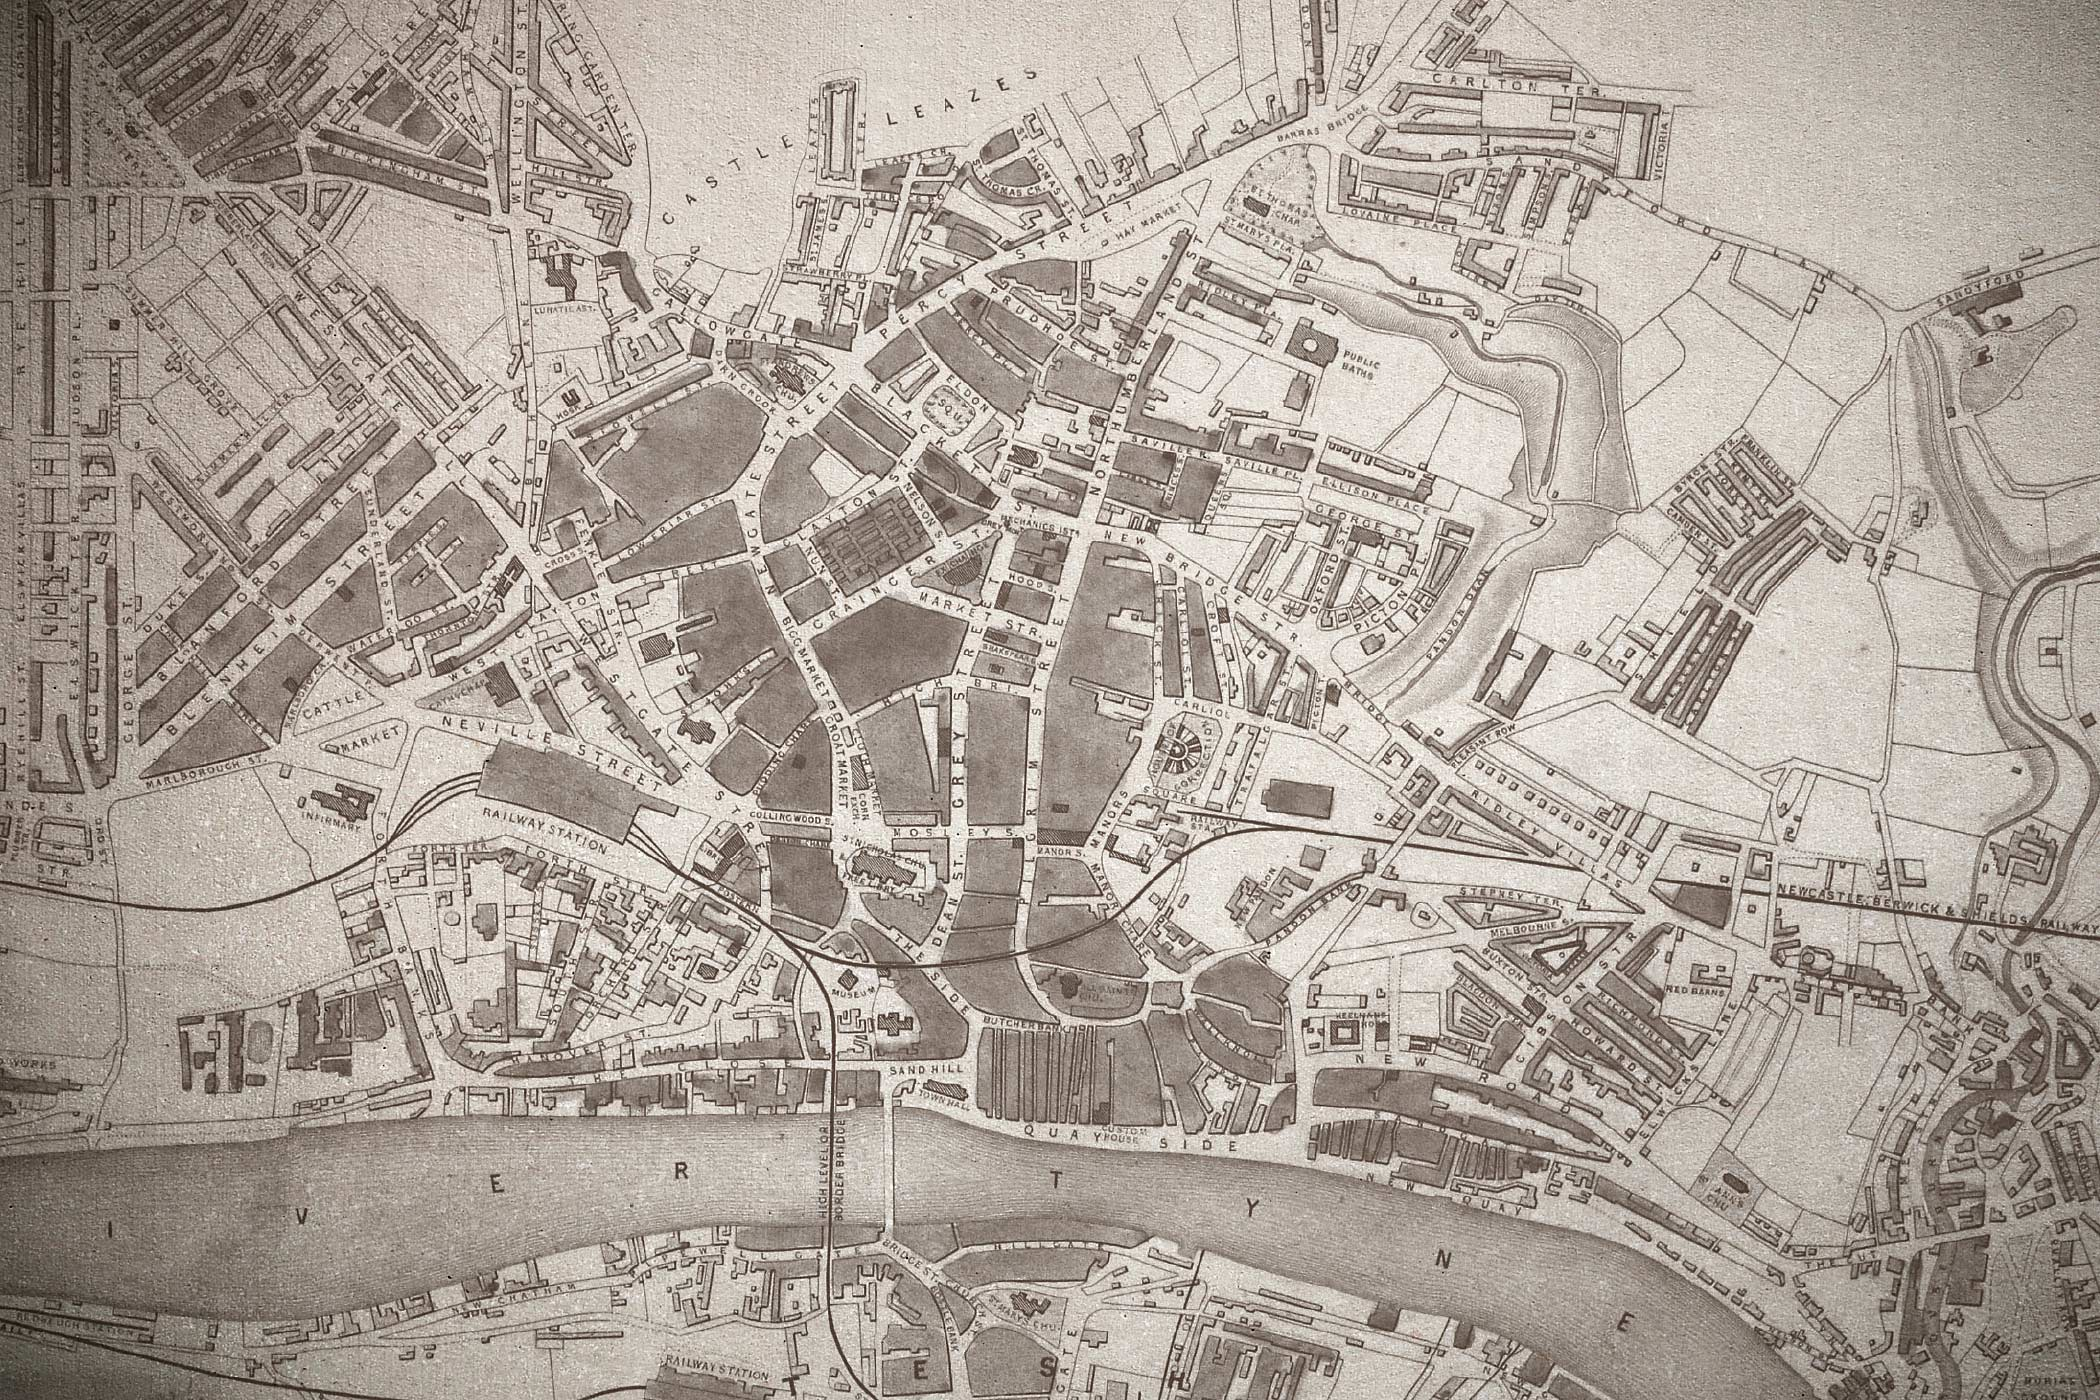 Newcastle upon Tyne map, circa 1849 showing the River Tyne and City Centre.